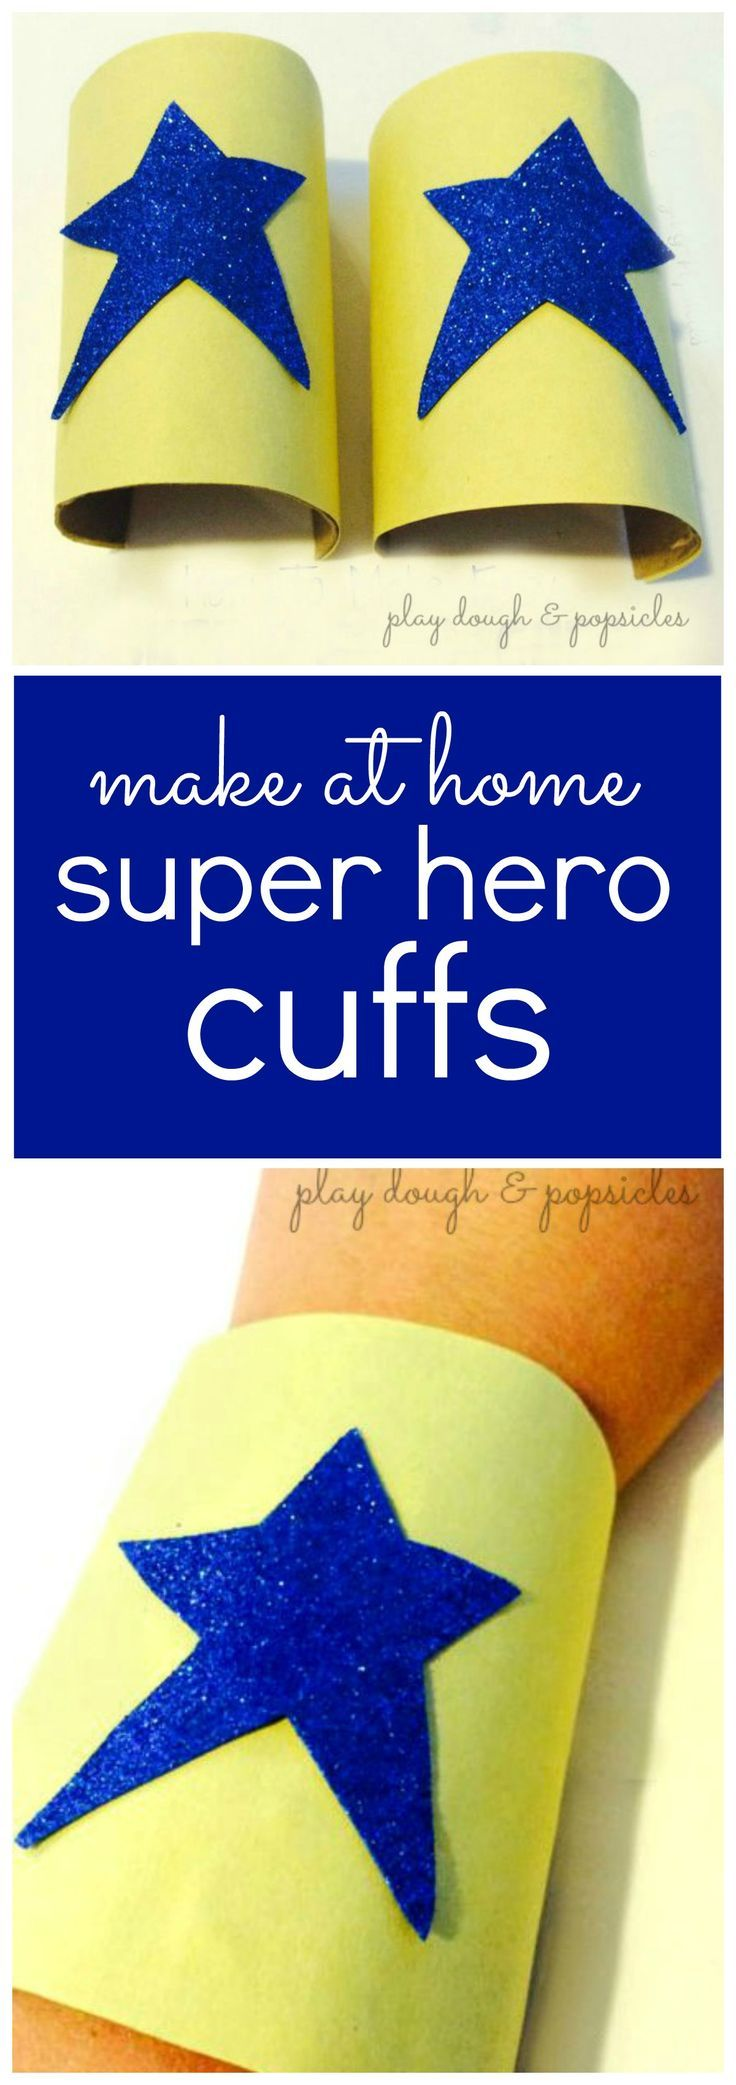 Super Easy Diy Dish Soap 3 Ingredients: How To Make Easy Super Hero Cuffs For Kids